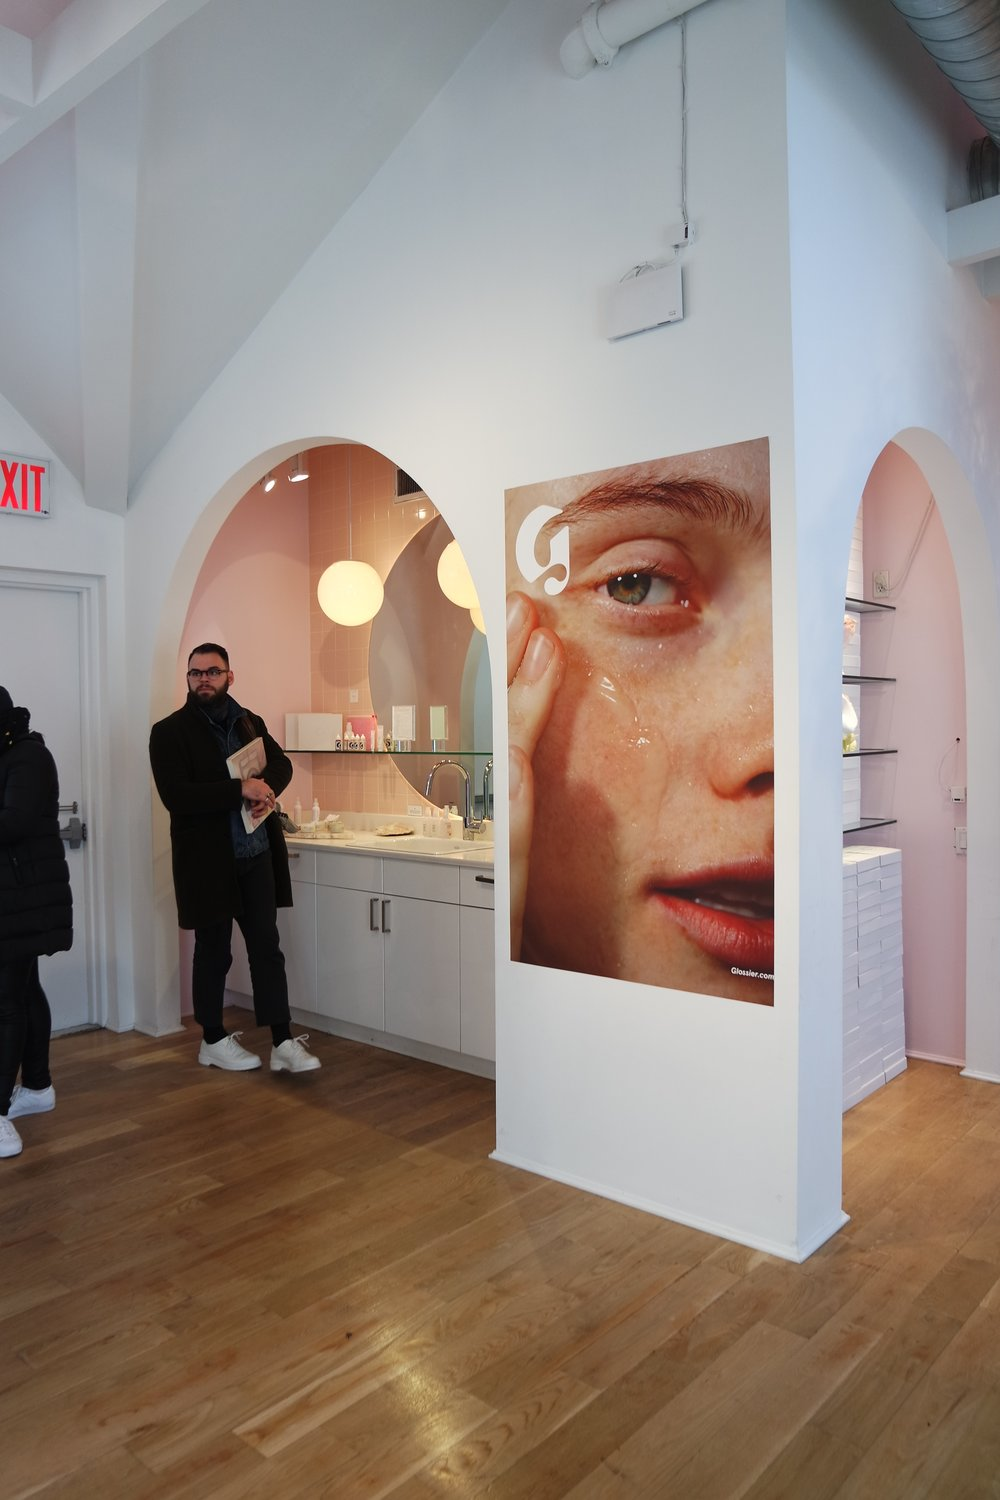 Glossier showroom (it smells like roses)